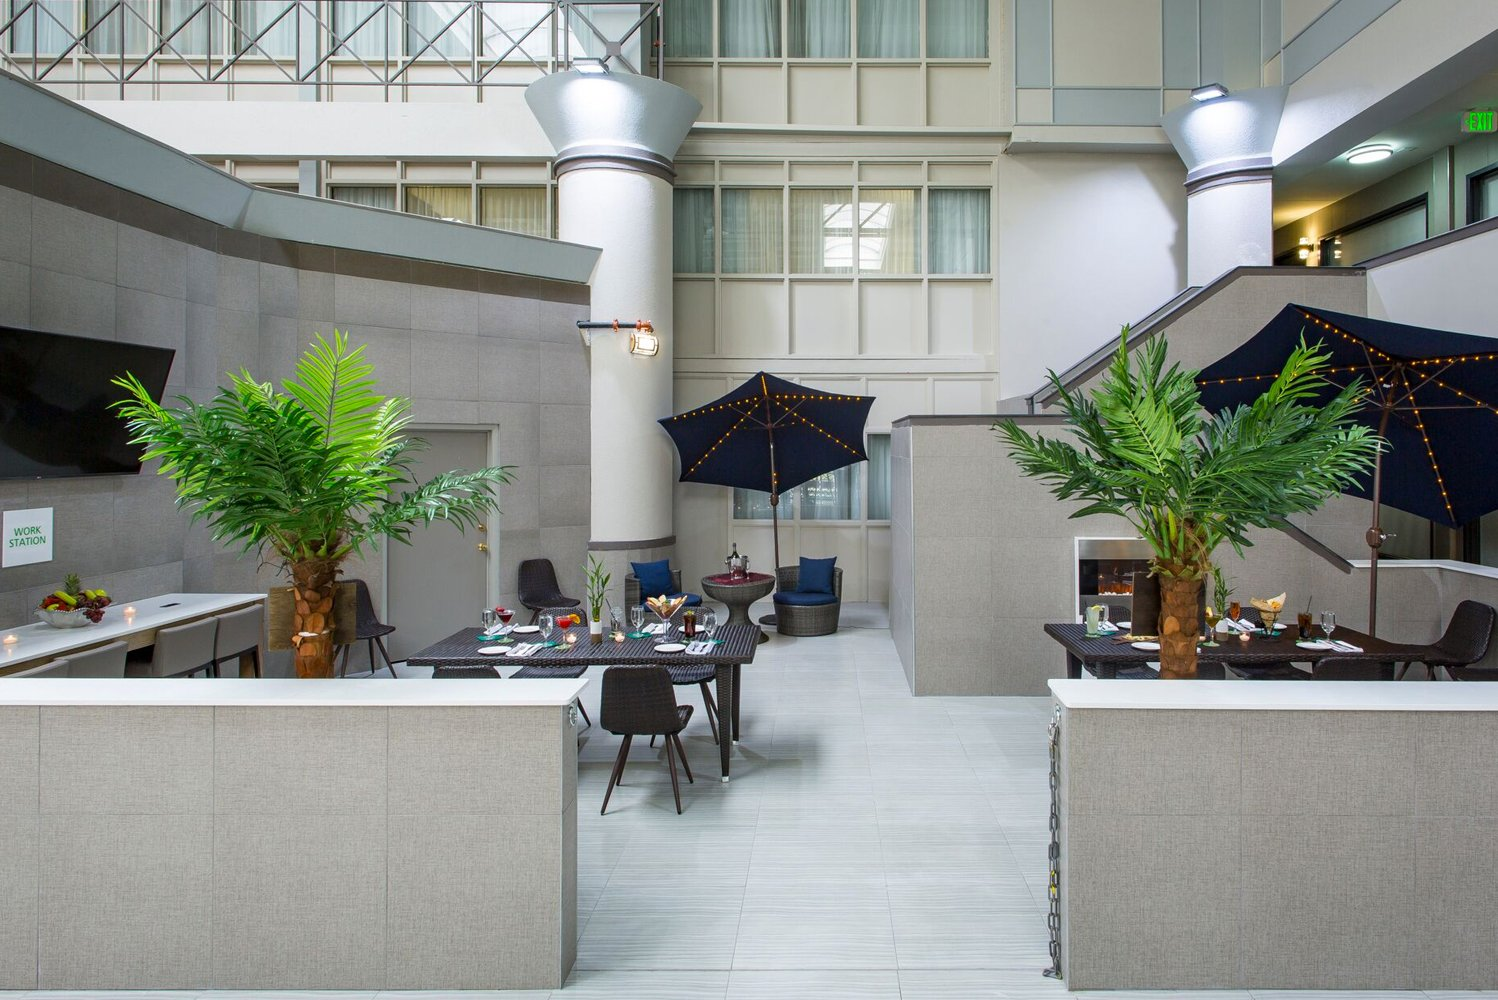 The property-wide transformation included an overhaul of the hotel's 15,000 square feet of meeting space, in addition to a complete revamp of the 250 guestrooms, lobby, indoor pool and public spaces.